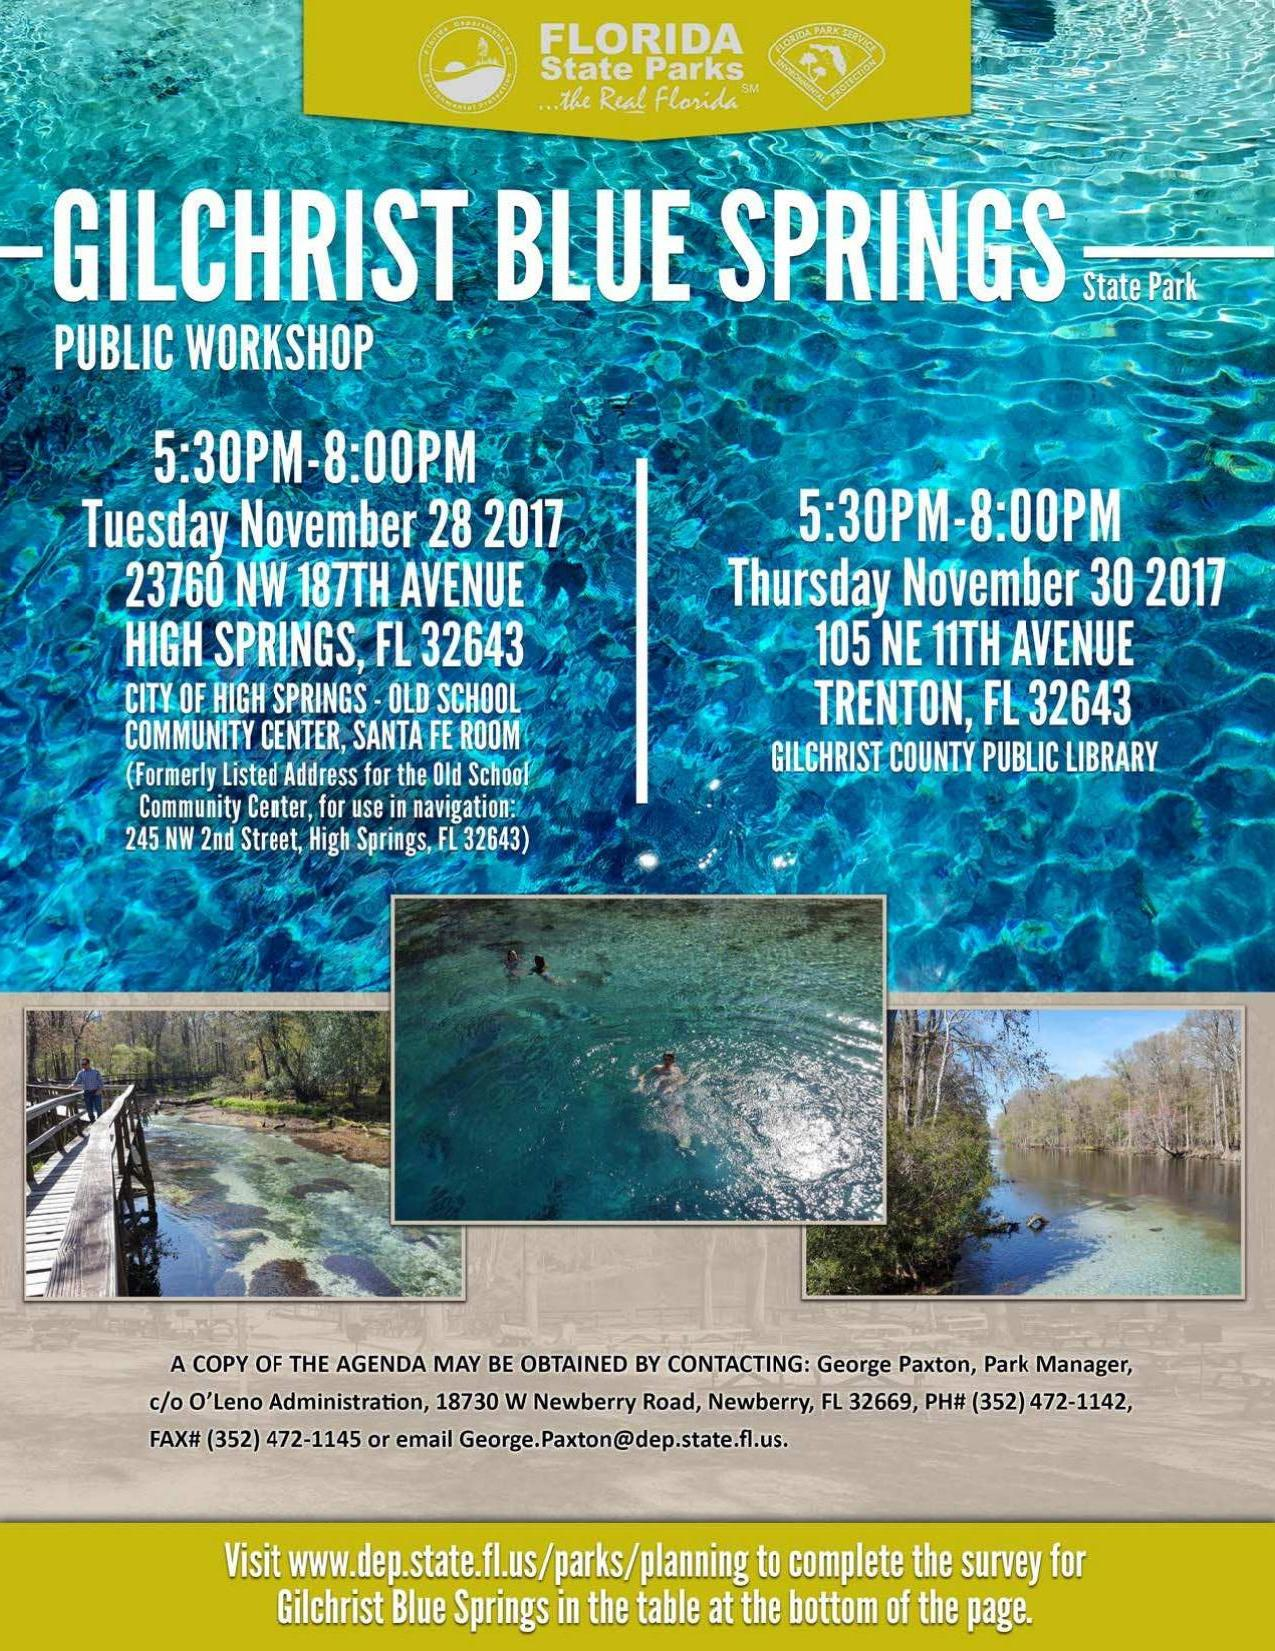 1275x1651 Flyer, FDEP, in Two public meetings about the new Gilchrist Blue Springs State Park, by Florida State Parks, for WWALS.net, 27 November 2017